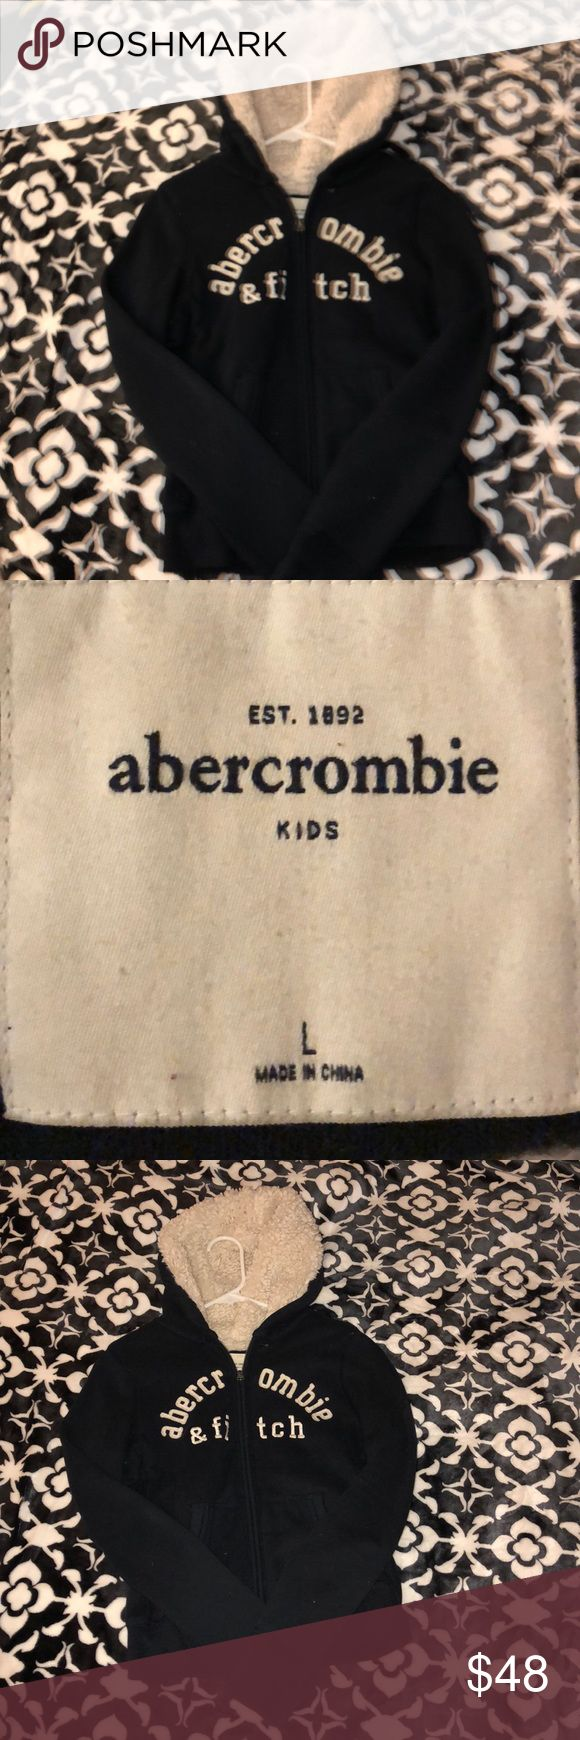 Abercrombie & Fitch Fur Lined Hoodie Abercrombie Hoodie  Large- L- Kids ((Fits a Small in Women's or Junior's))  No Stains, Rips, or Tares....  Fur Lining is in Great Condition   ❗️PRICE IS FIRM❗️  SMOKE FREE HOME Abercrombie & Fitch Tops Sweatshirts & Hoodies